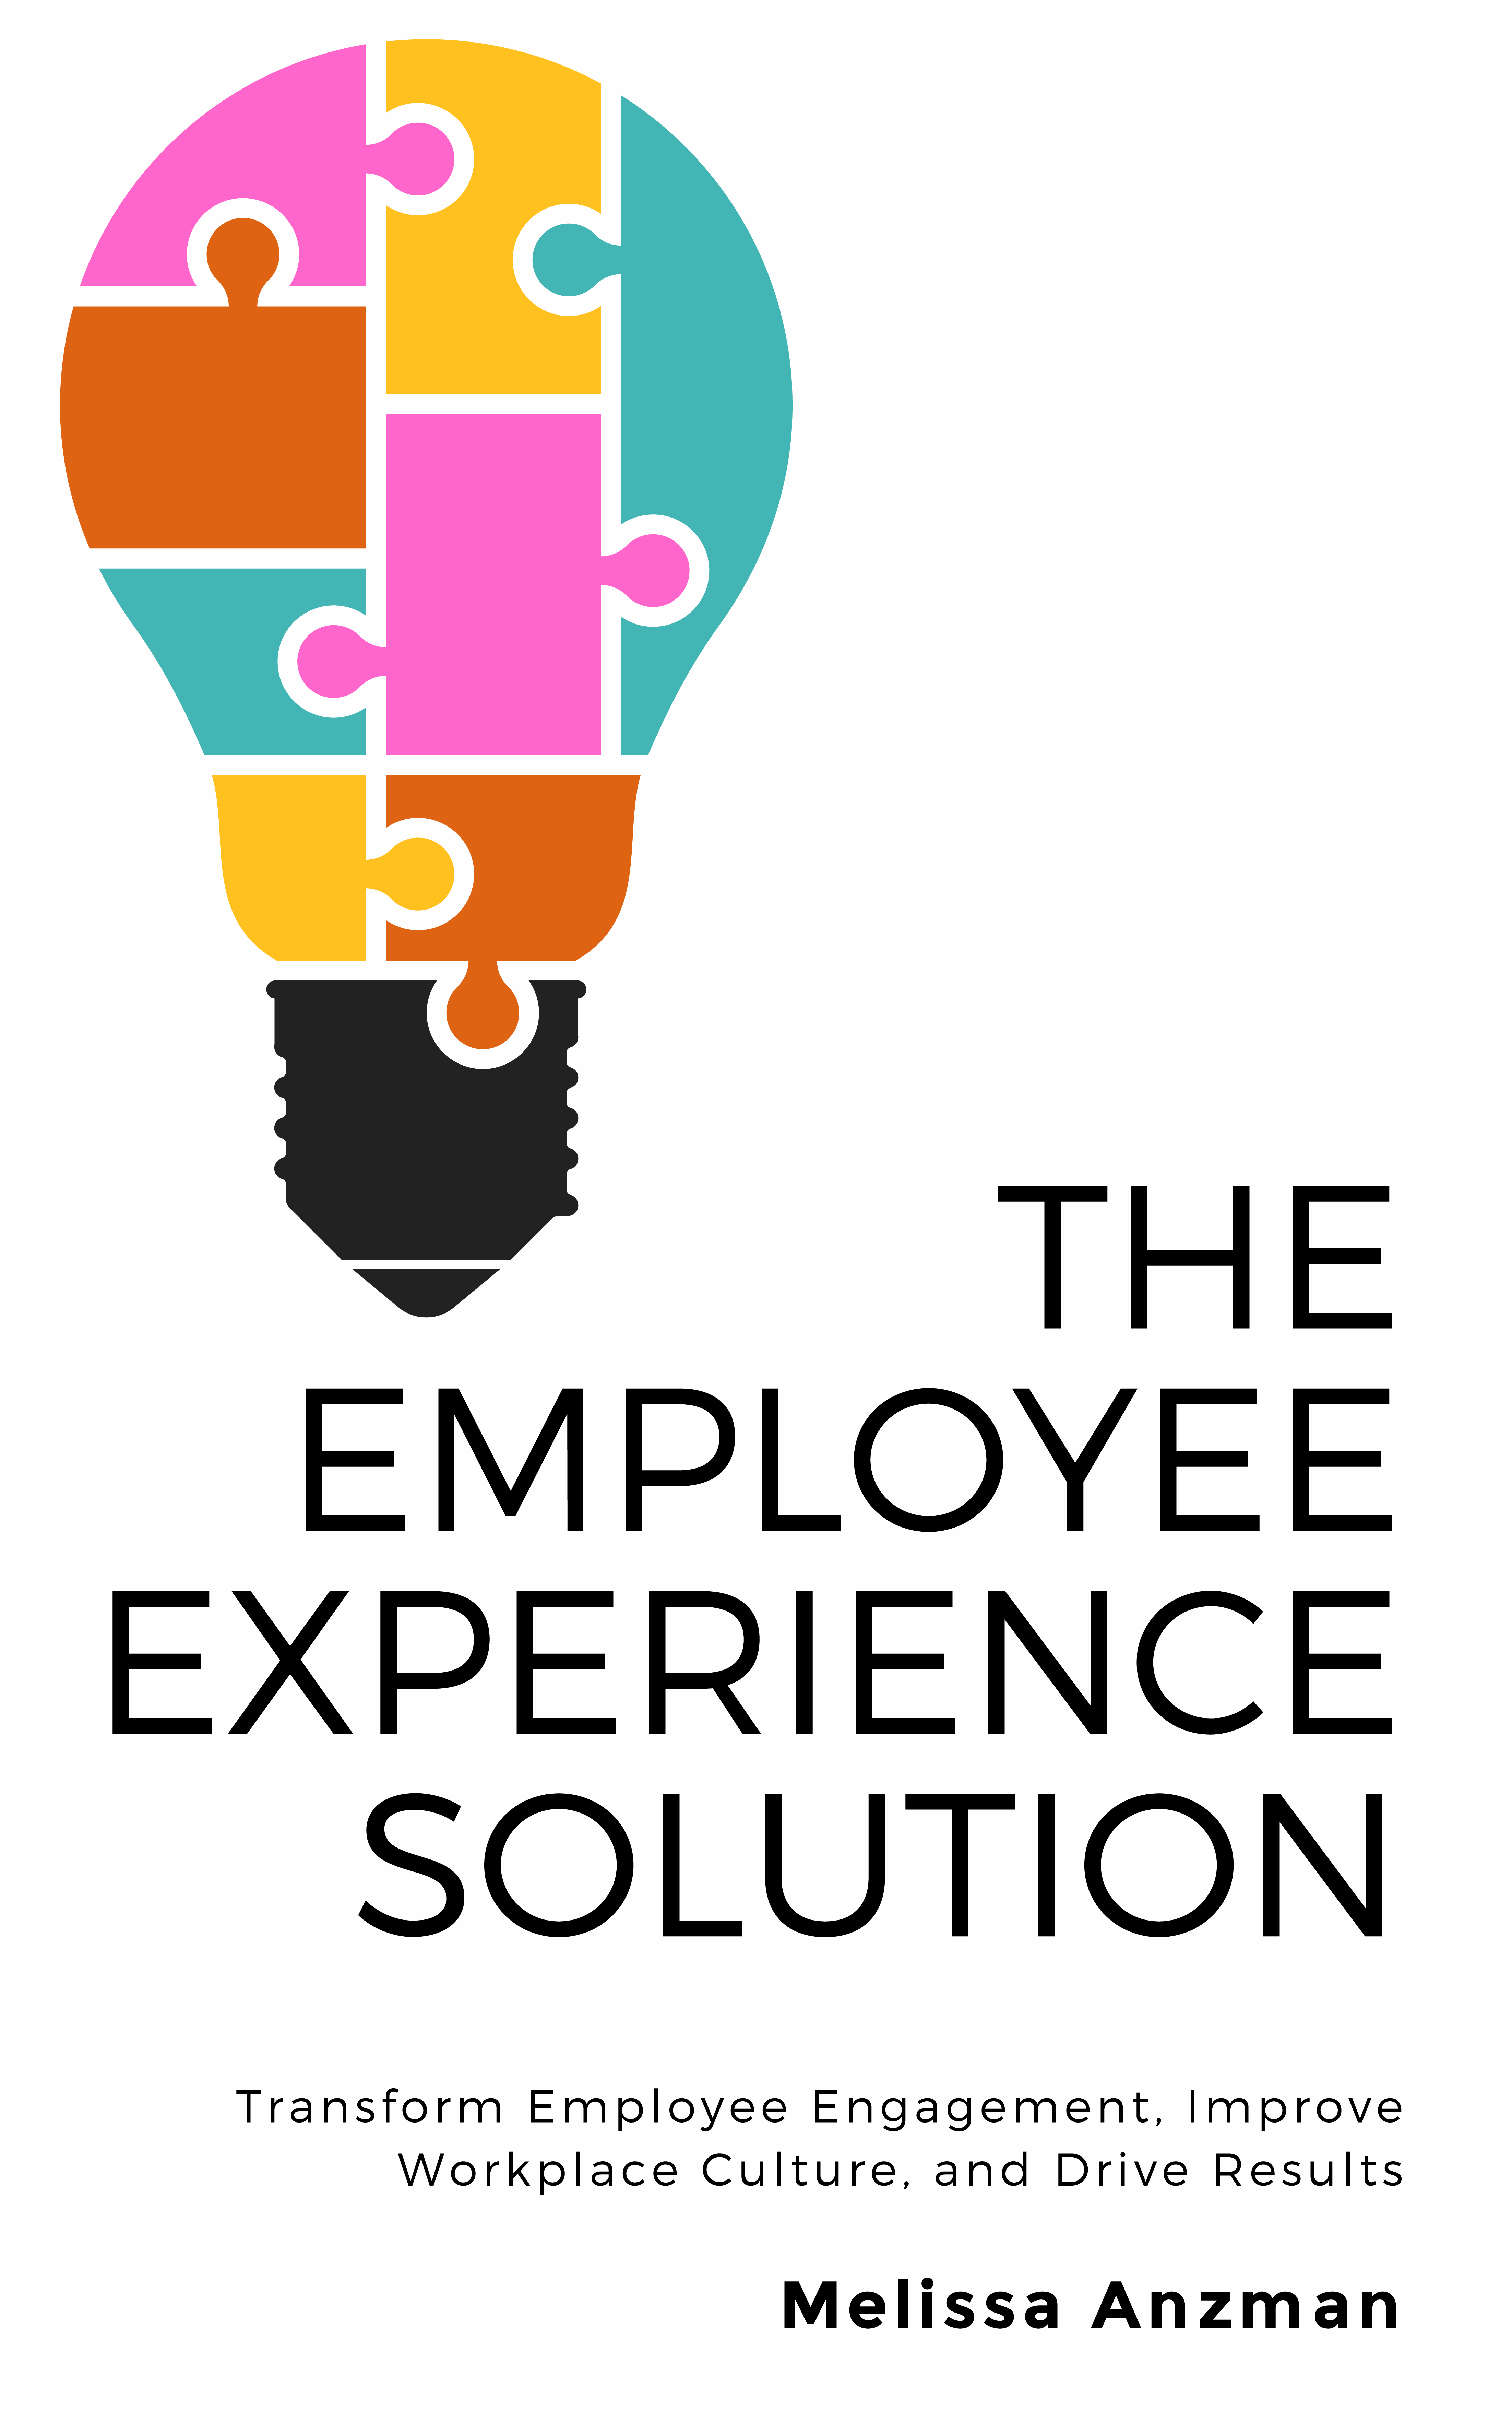 The Employee Experience Solution: Transform Employee Engagement, Improve Workplace Culture, and Drive Results